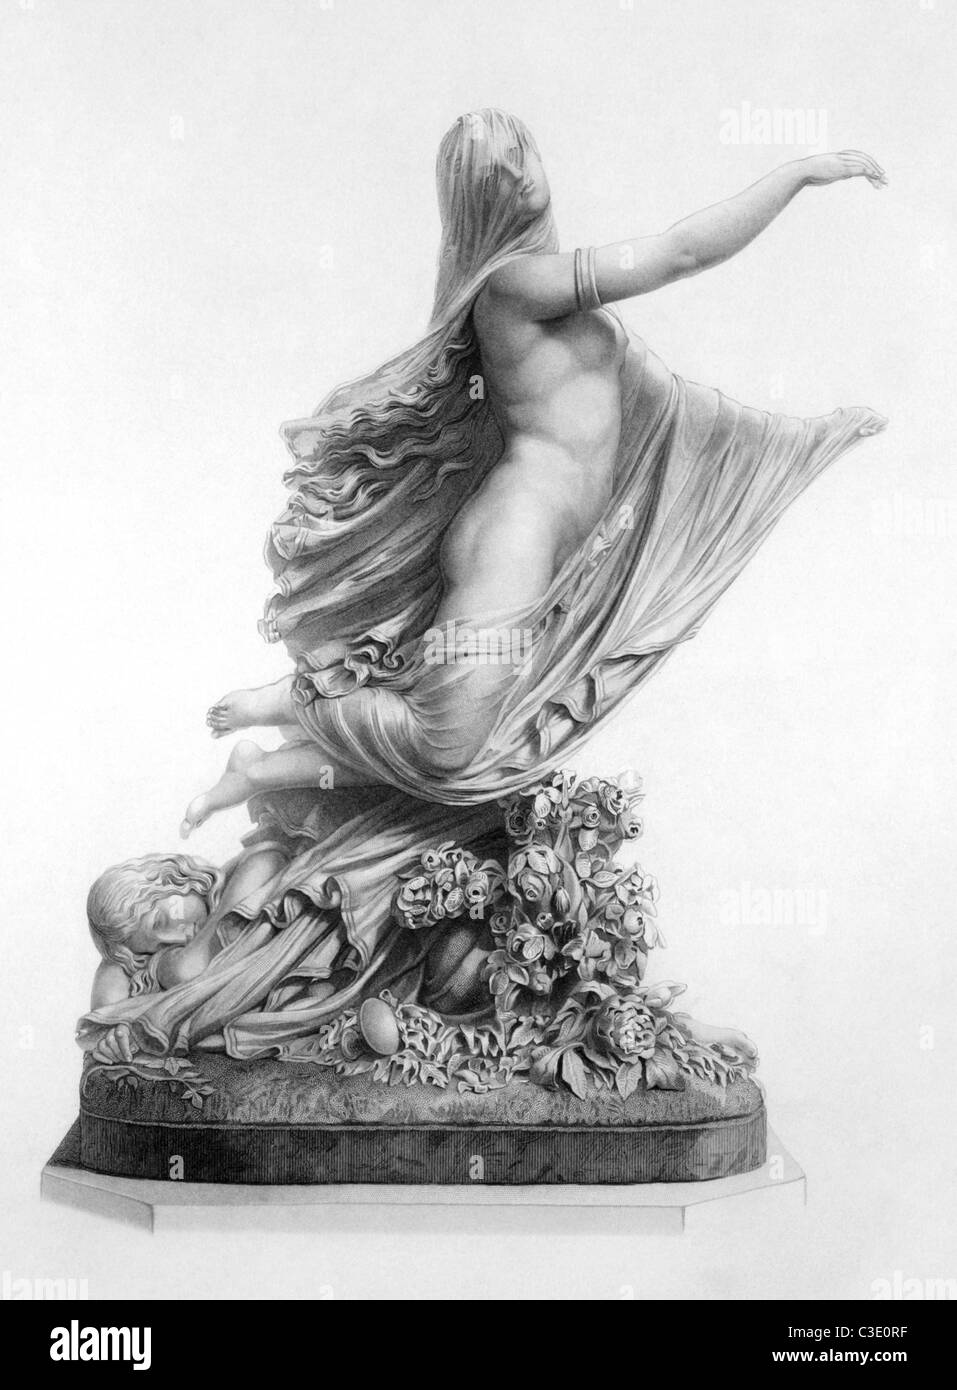 The sleep of sorrow and the dream of joy on engraving from 1880. Engraved by E.W.Stodart from the sculpture by R.Monti. - Stock Image